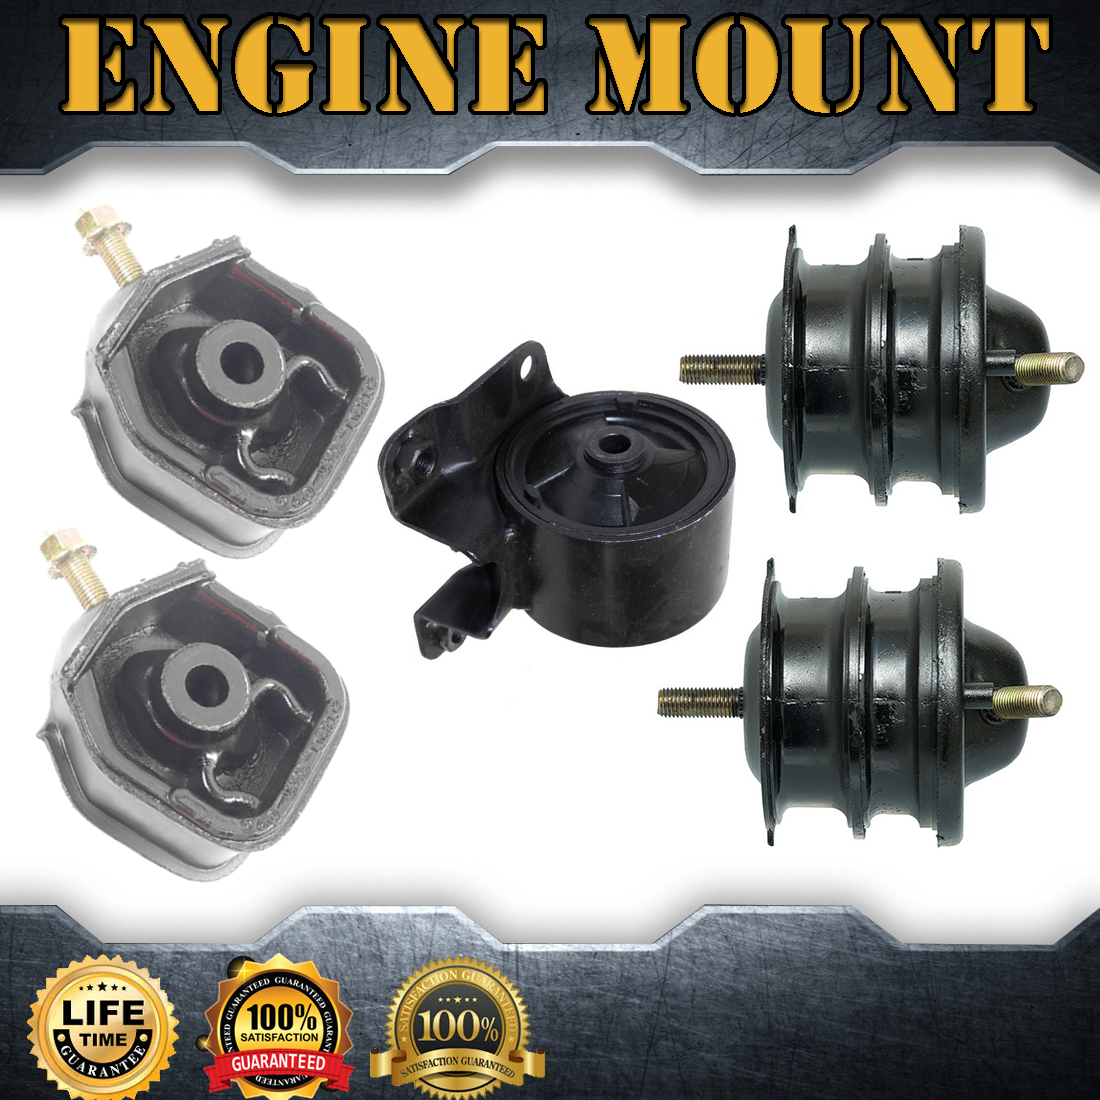 5X Engine Motor& Trans. Mount Set Kit For 1997-1998 ACURA